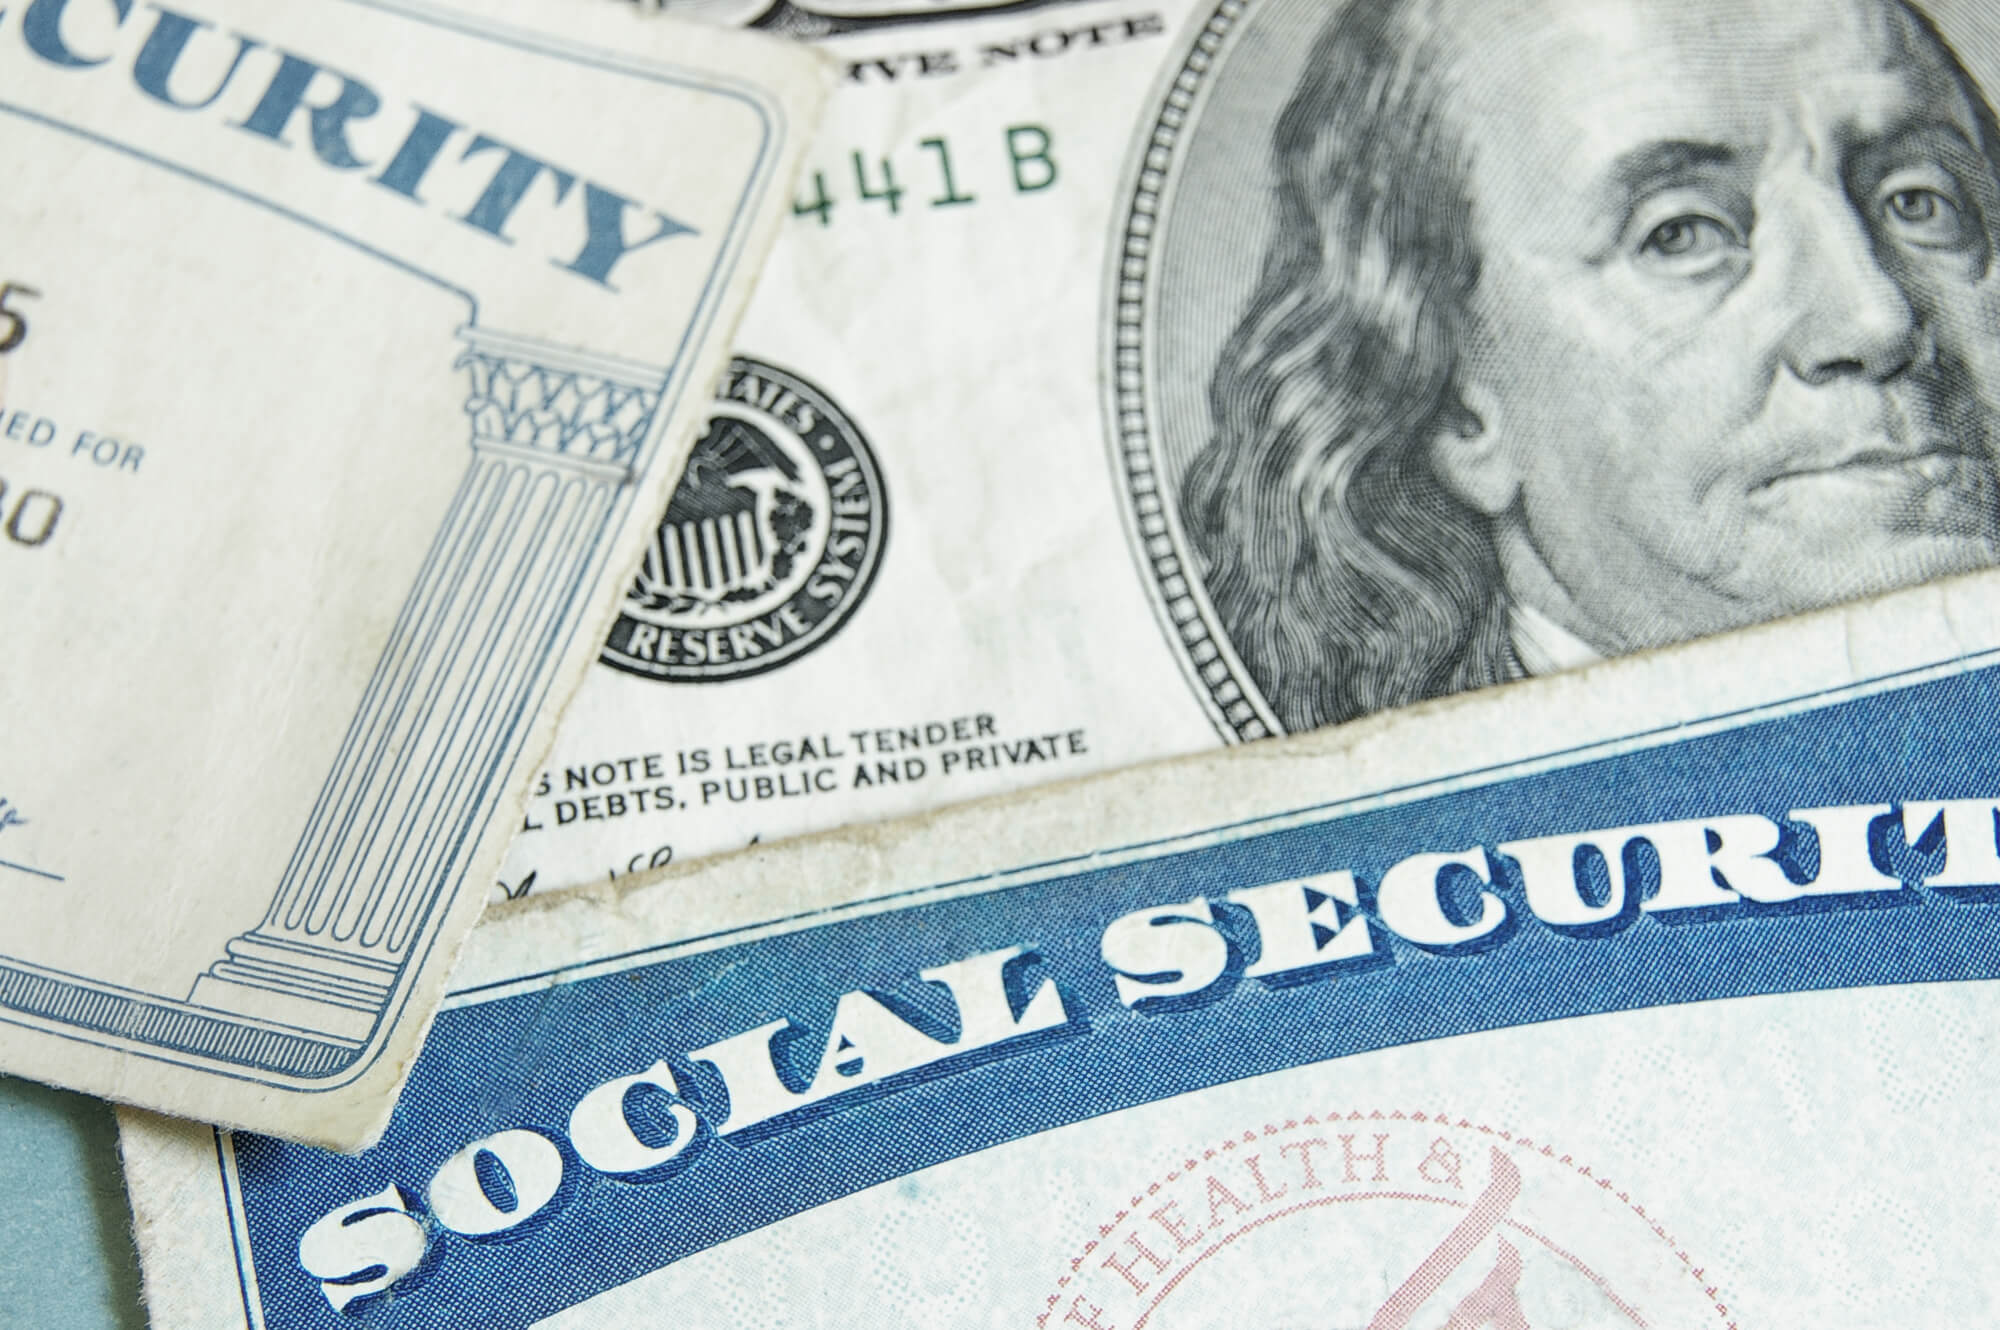 Changes and Updates to Social Security Regulation